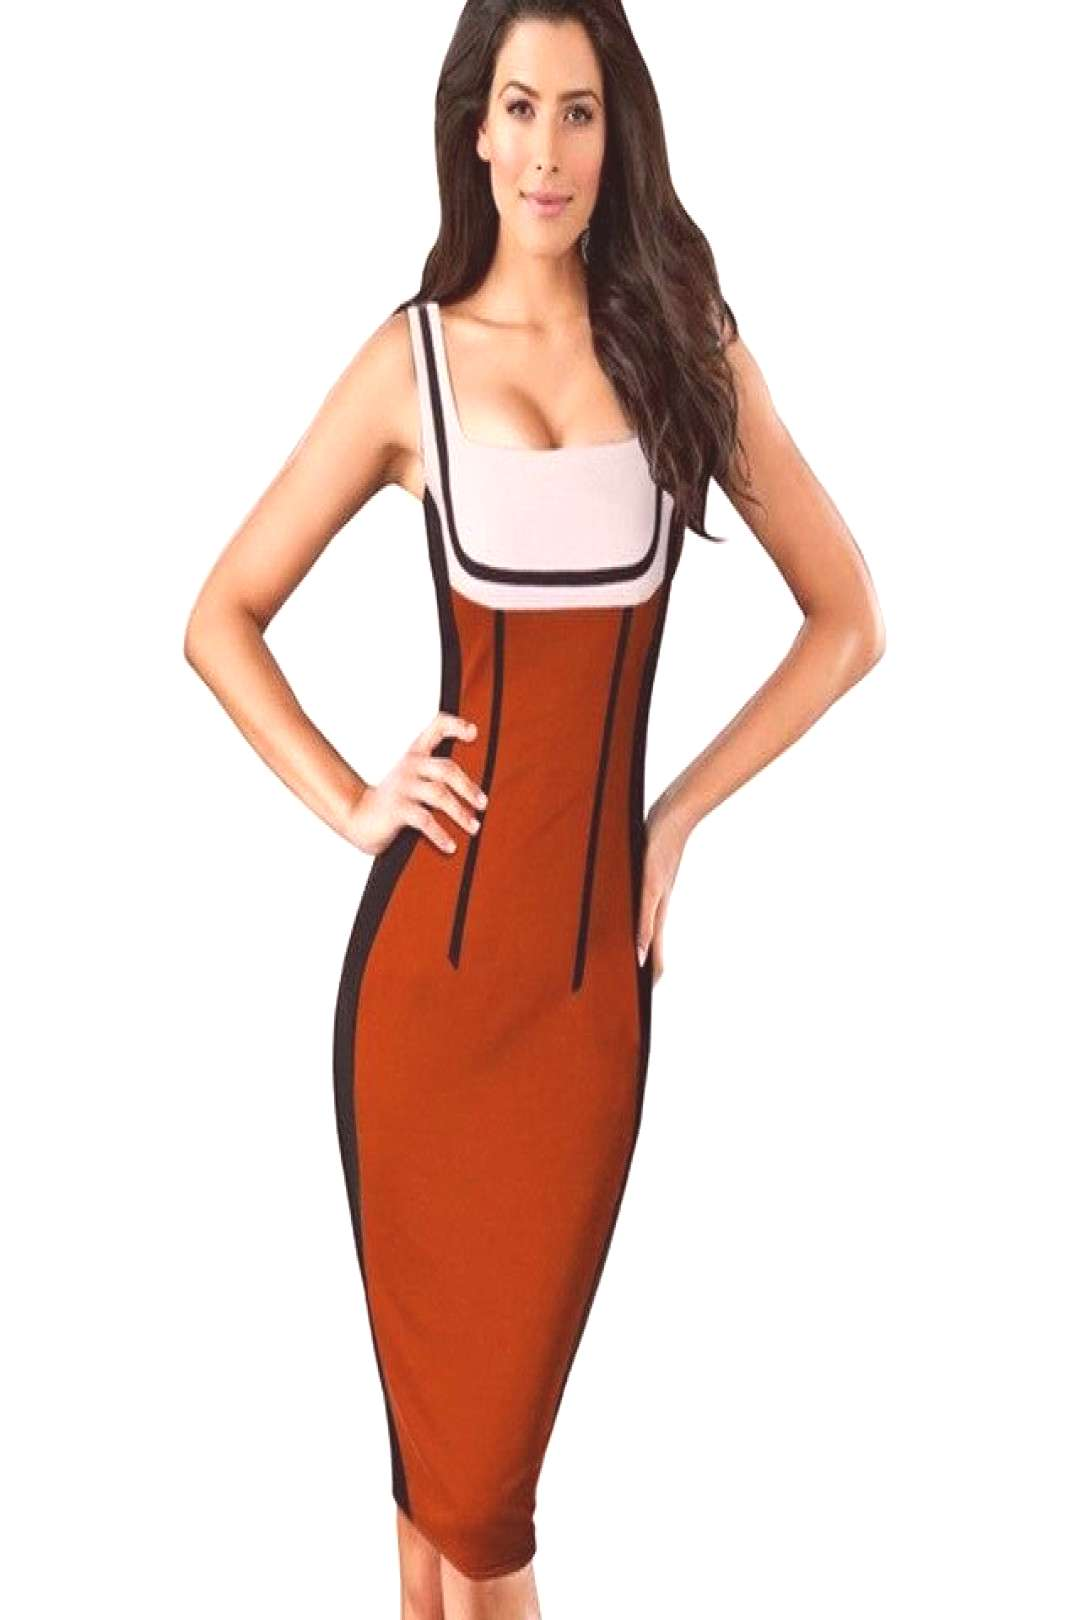 Nice-forever Patchwork spaghetti Strap Fashion dresses Women Summer Optical Illusion Pinup bodycon